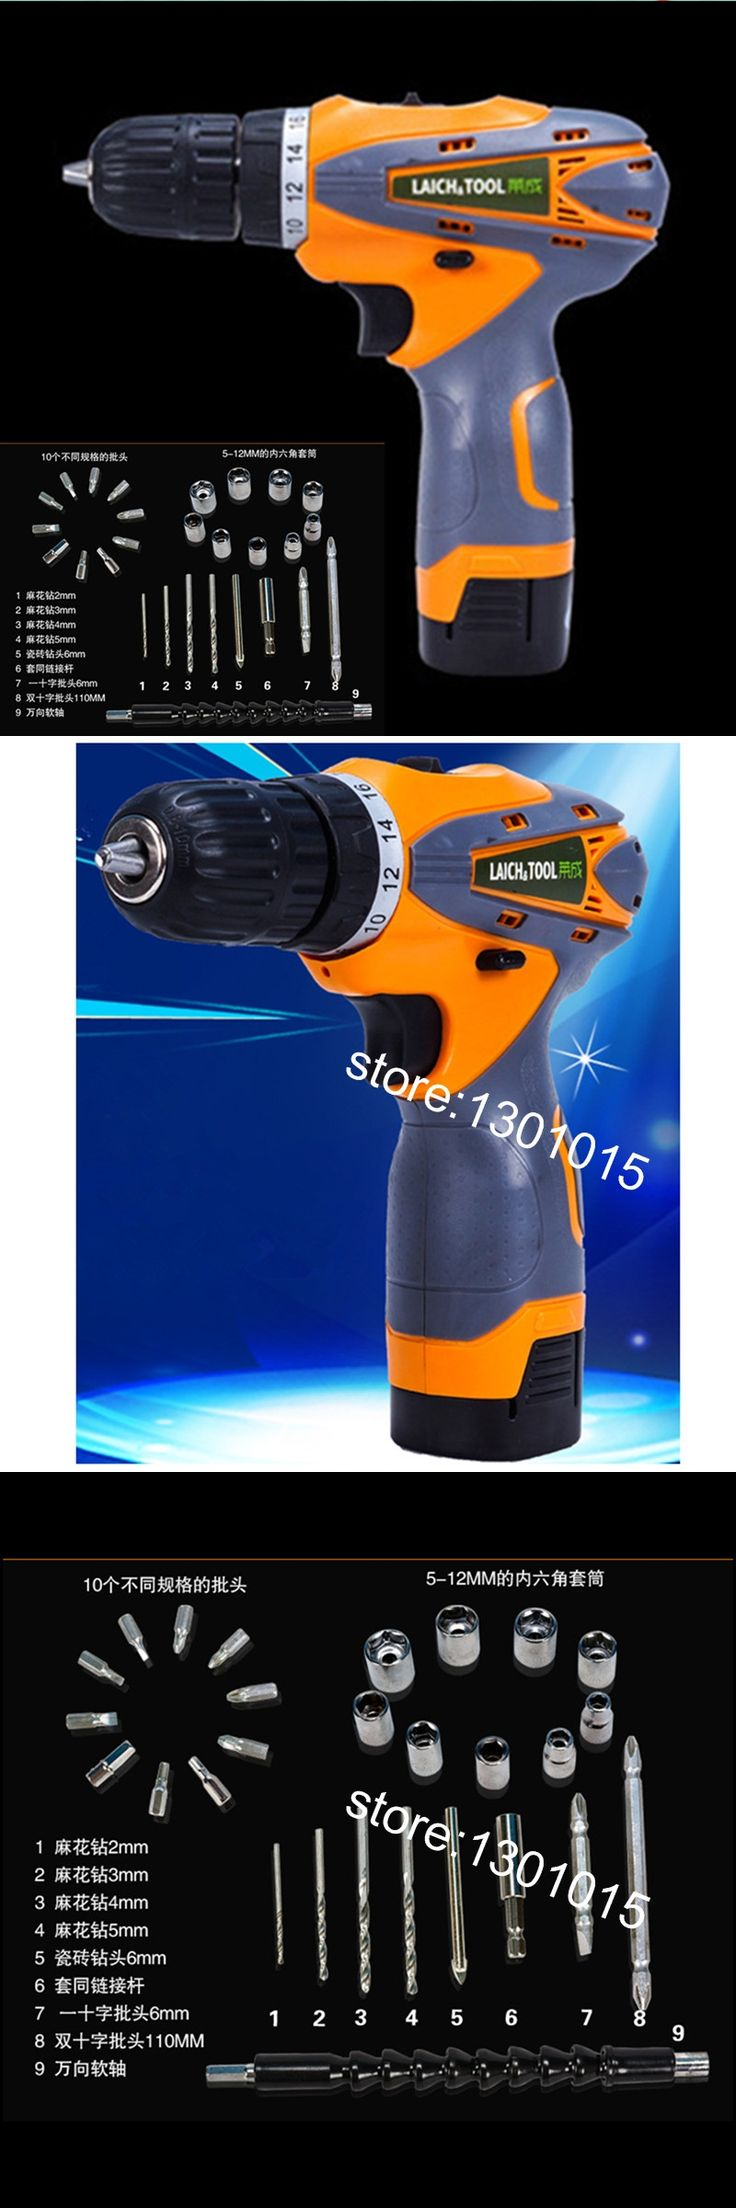 16.8V Lithium Battery Torque Electric Drill bit cordless Electric Screwdriver hand wrench with plastic case carry tool box set